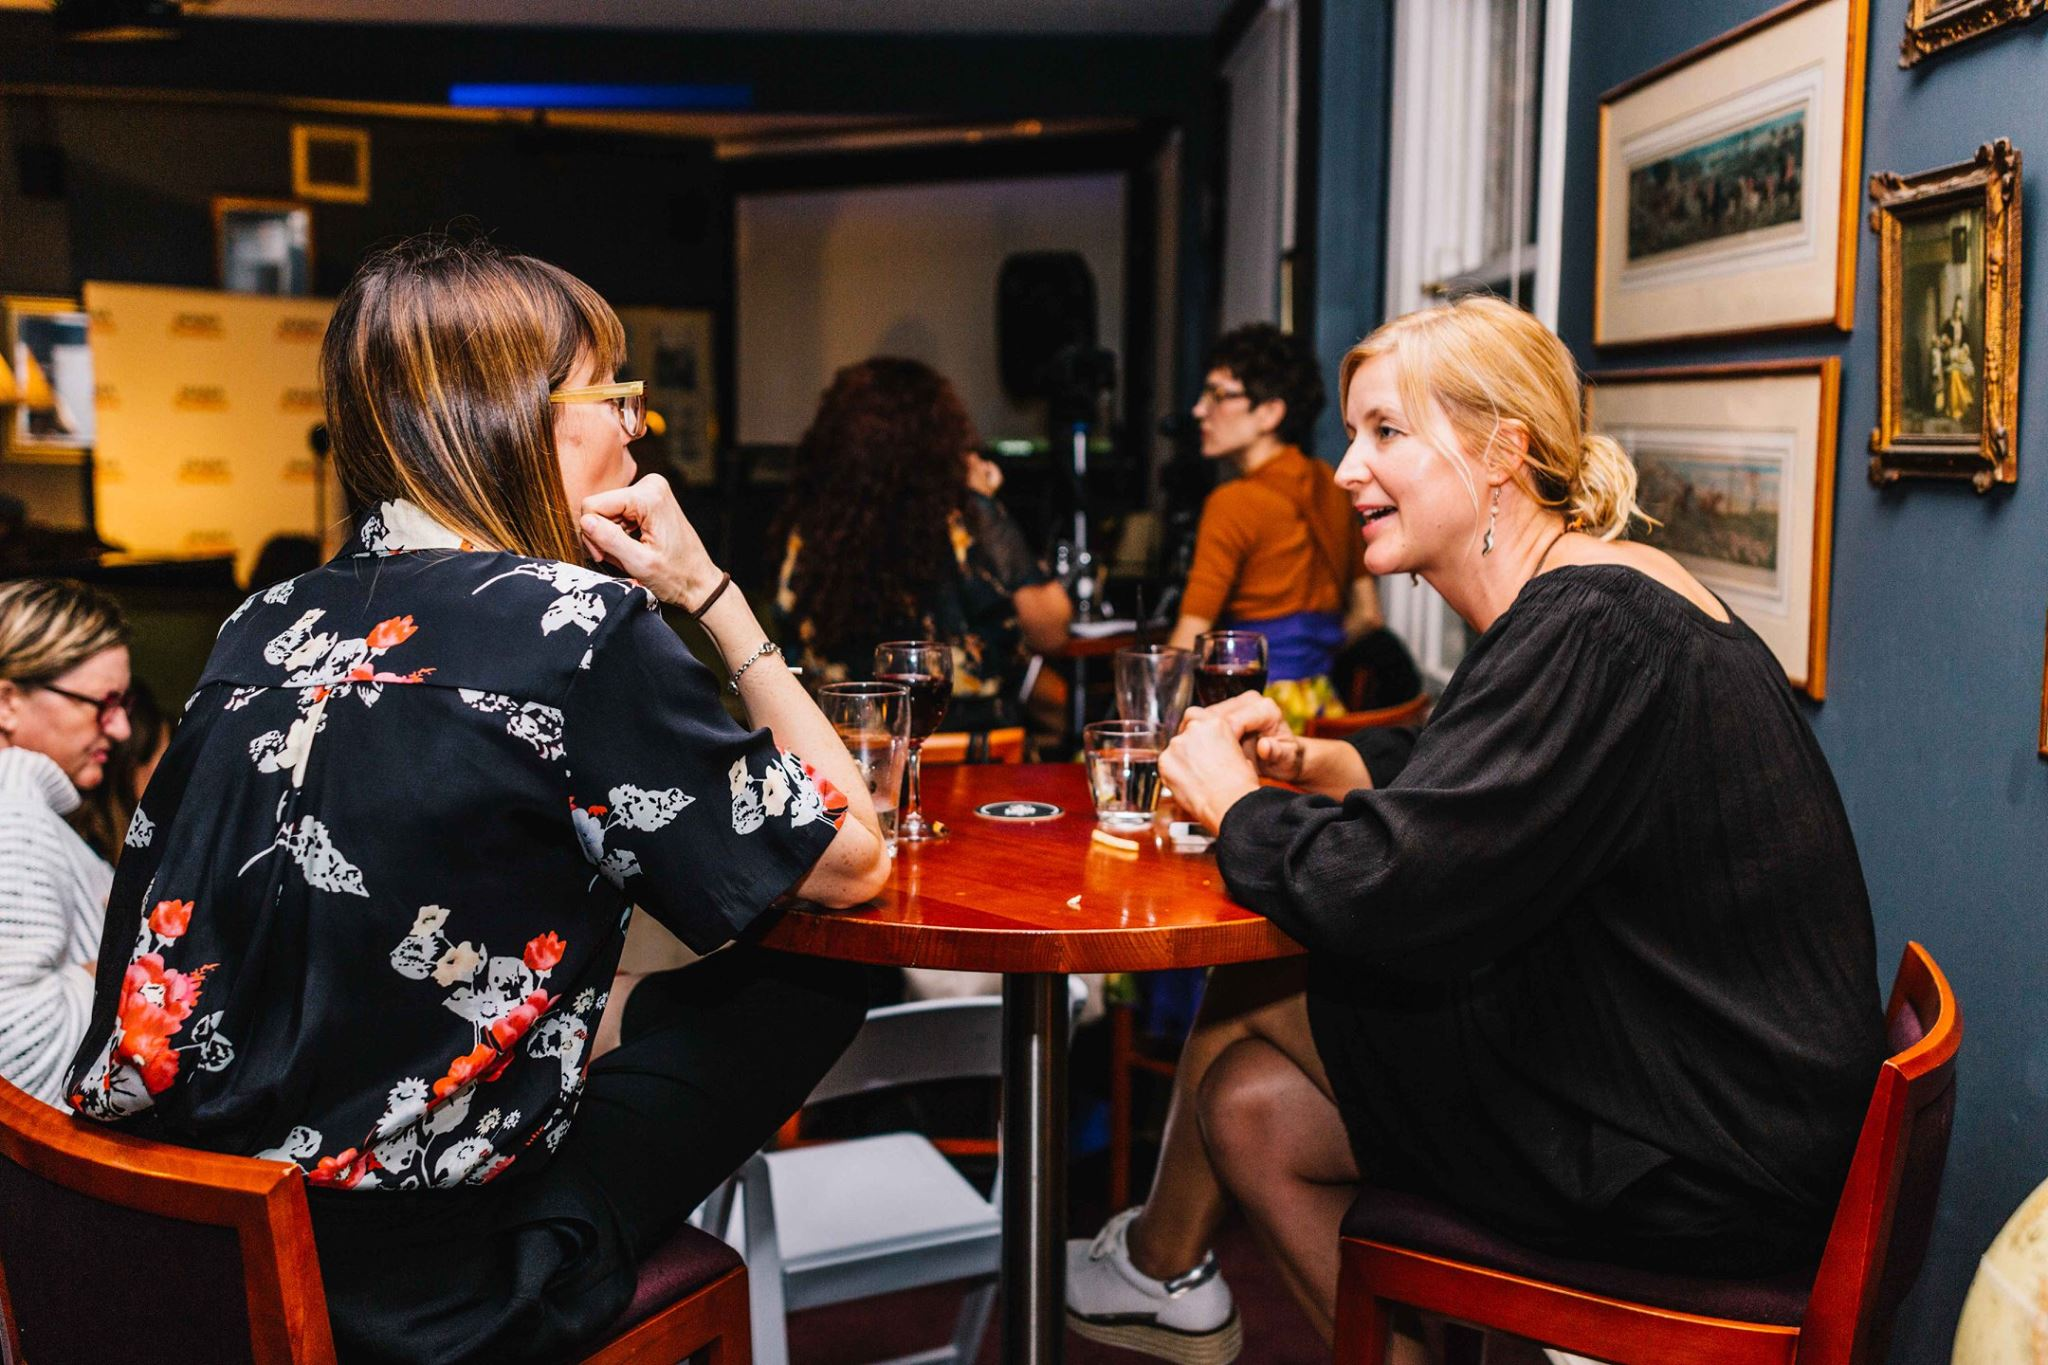 Two very special creative mamas, at our Mama Creatives Expert Blogger Panel: 'Sharing your voice & creative passion', featuring Alexx Stuart, founder of Low Tox Life, Lorraine Murphy, founder of The Remarkables Group & Jo Dunlop, creator of GLOBAL FASHPACK.